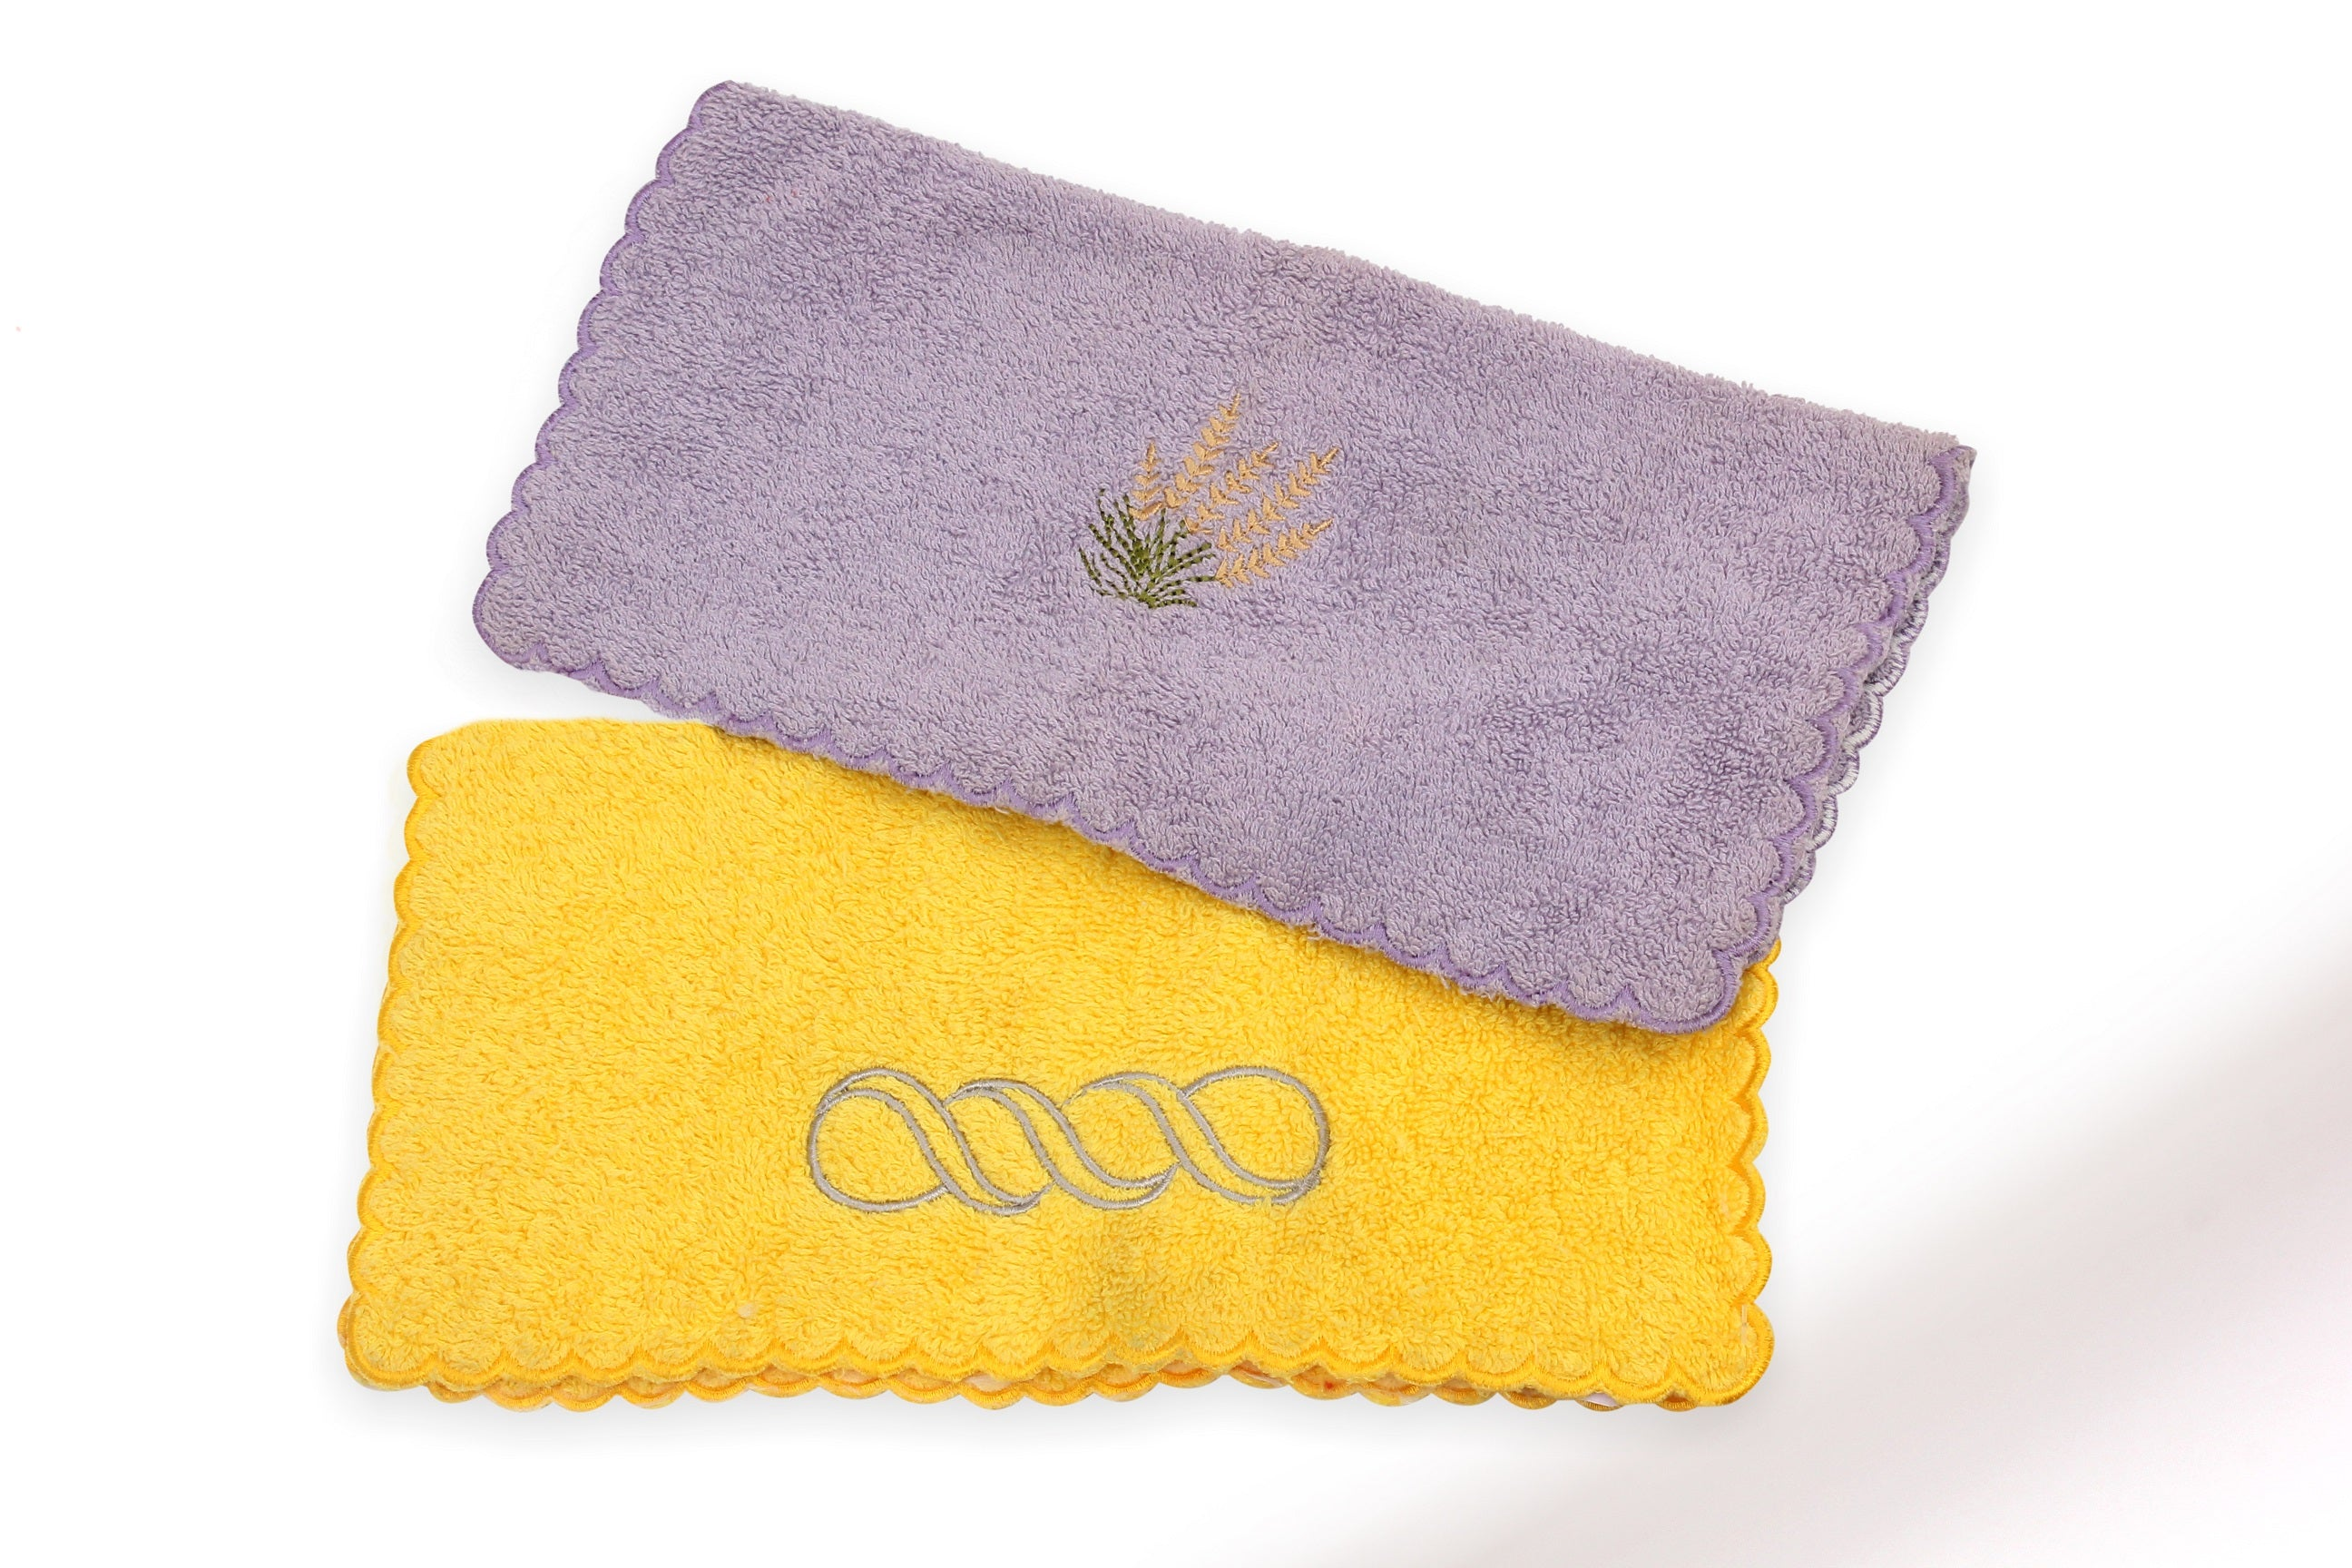 Embroidered Towel with scalloped border